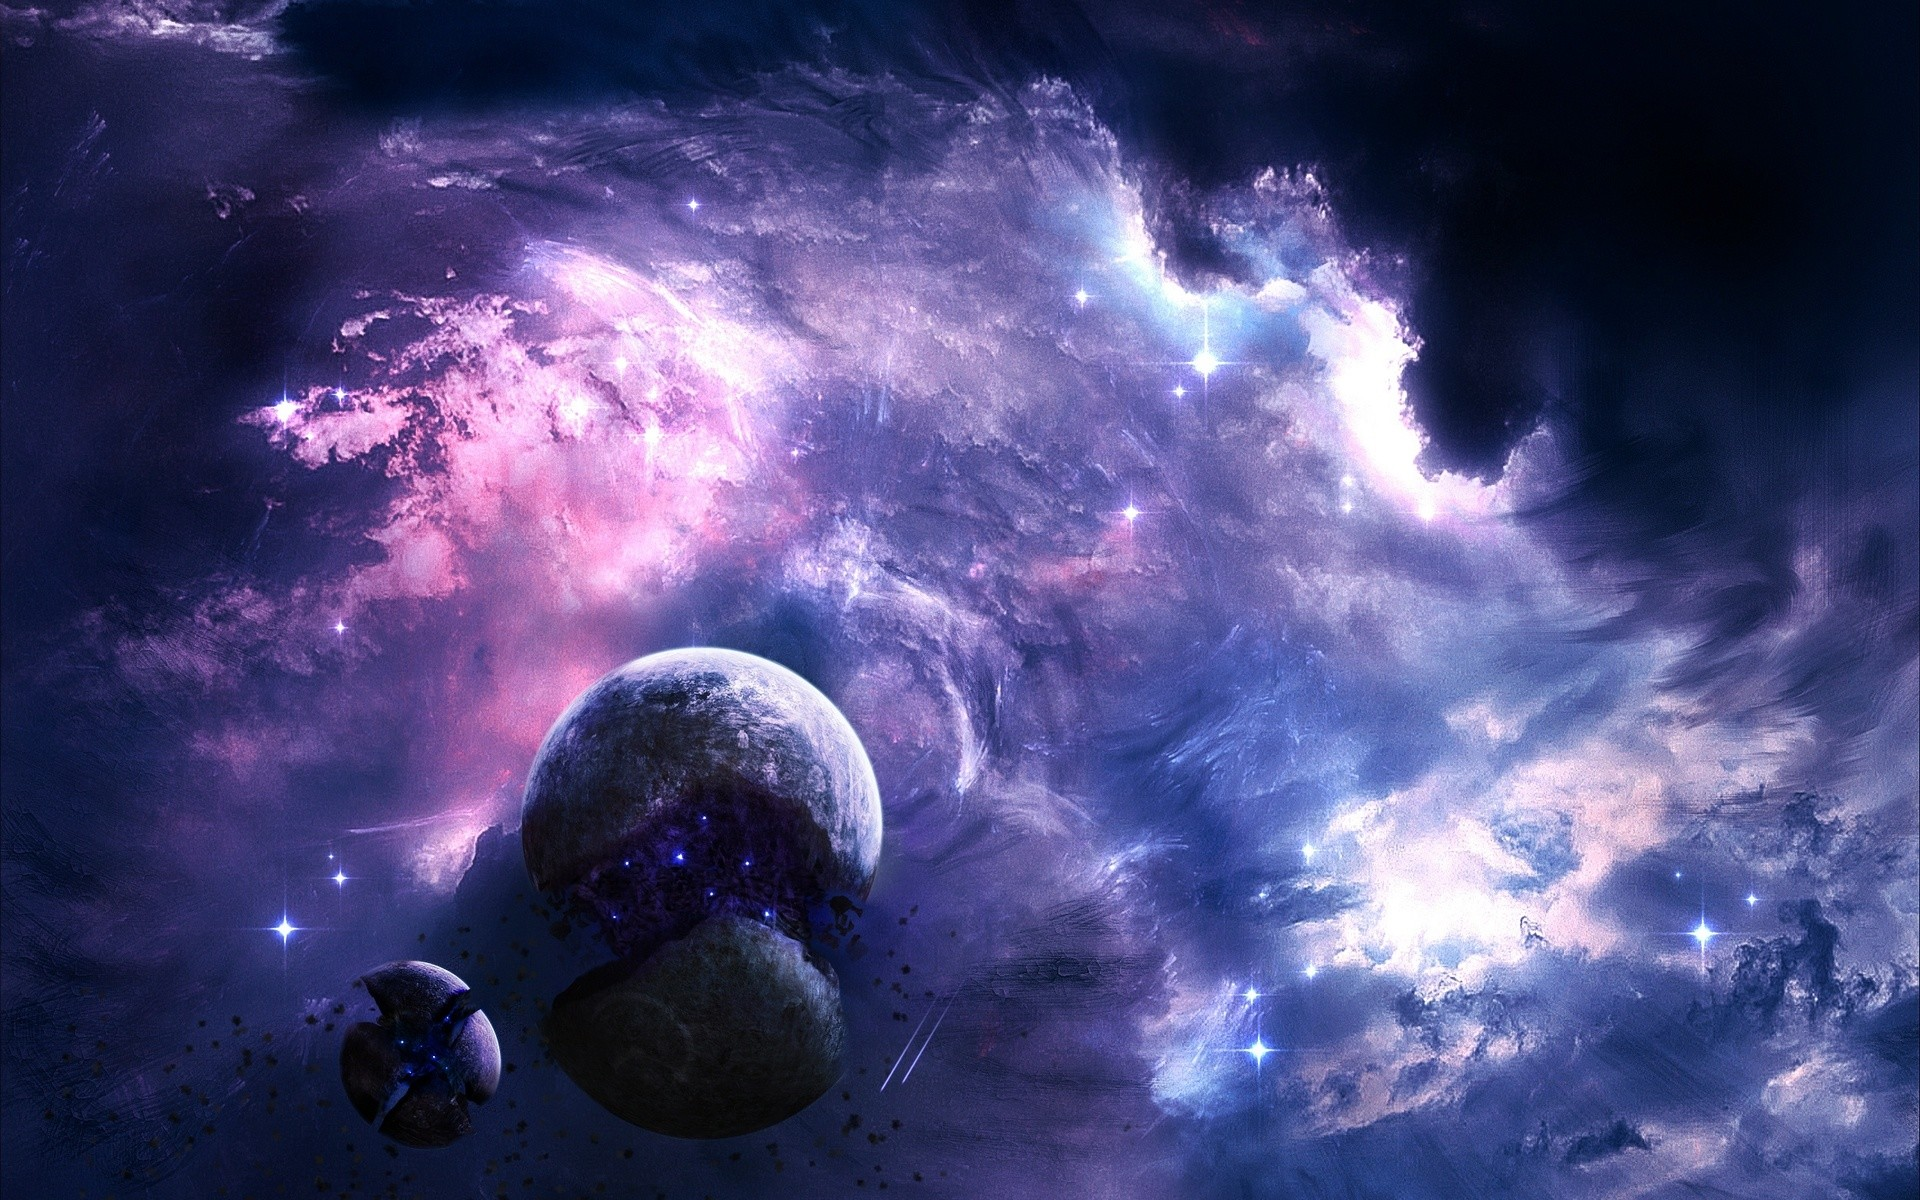 Abstract Wallpaper Galaxy Free High Resolution